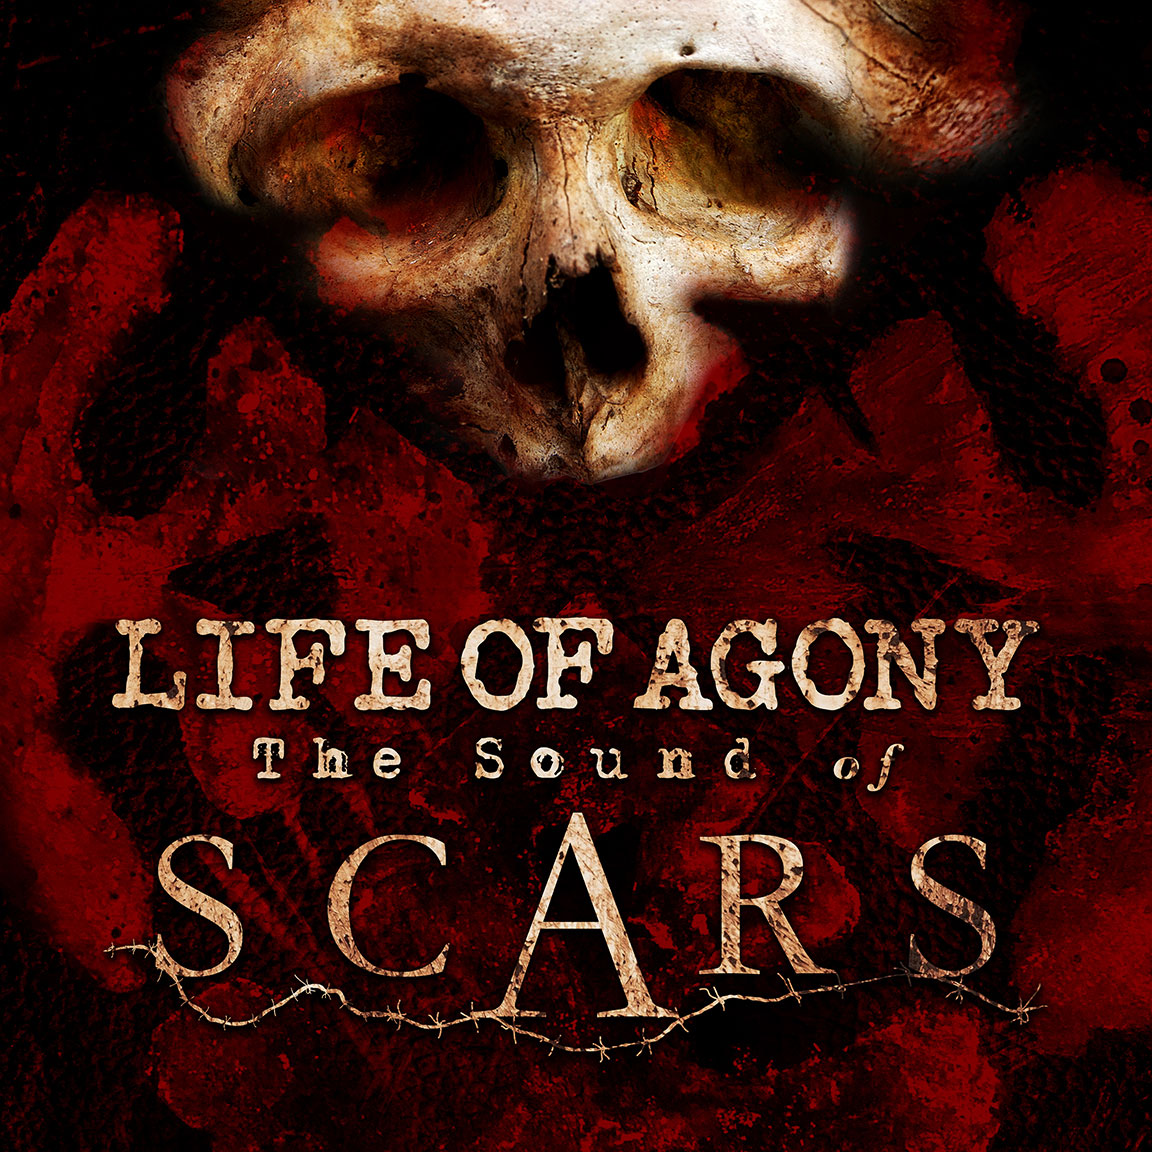 LIFE-OF-AGONY-THE-SOUND-OF-SCARS-COVER-WEB-QUALITY